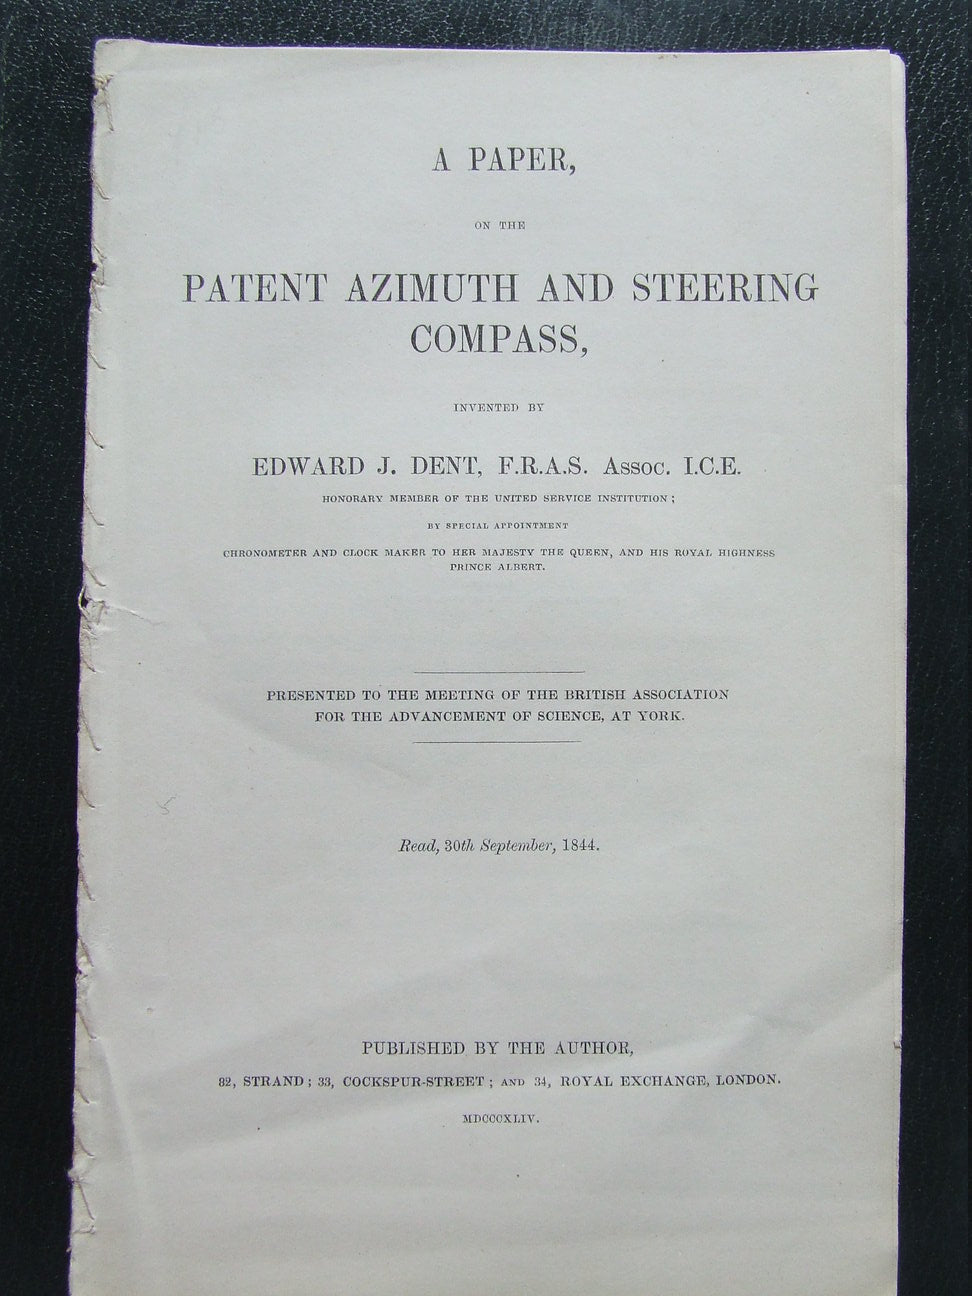 Paper, on the Patent Azimuth and Steering Compass